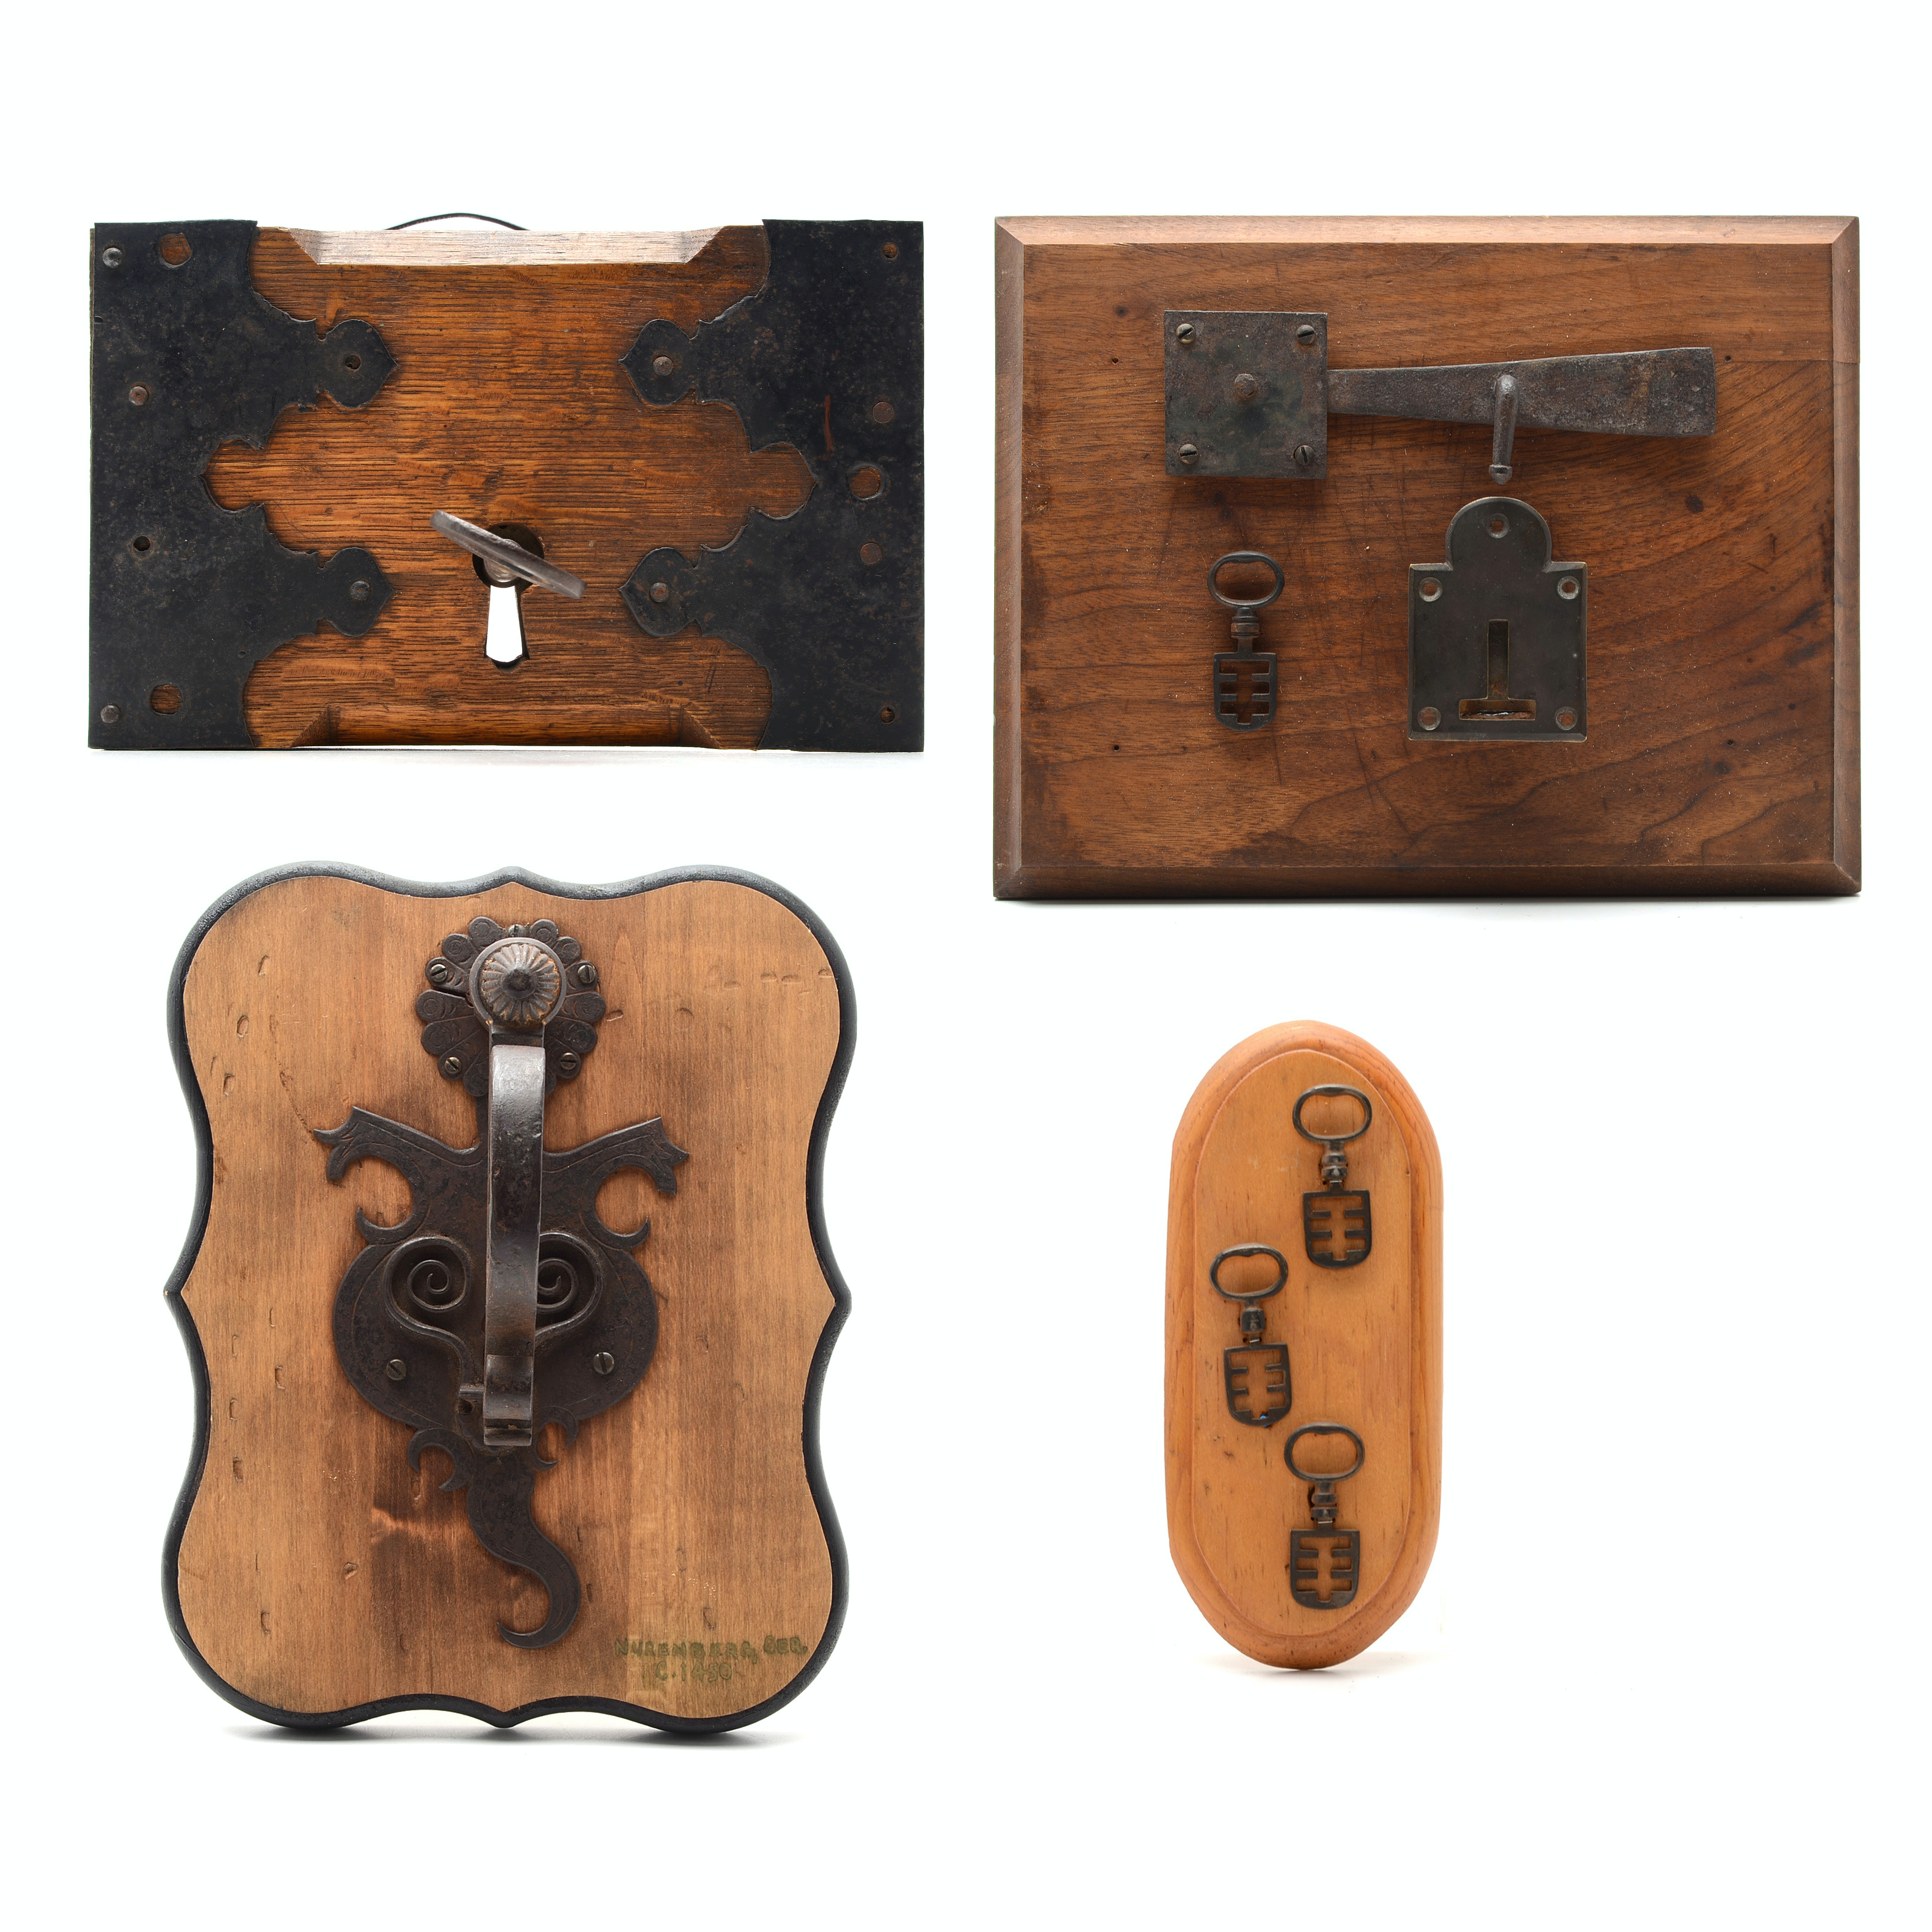 Antique Iron Locks, Keys, and Hardware, Including a 16th to 17th Century Example